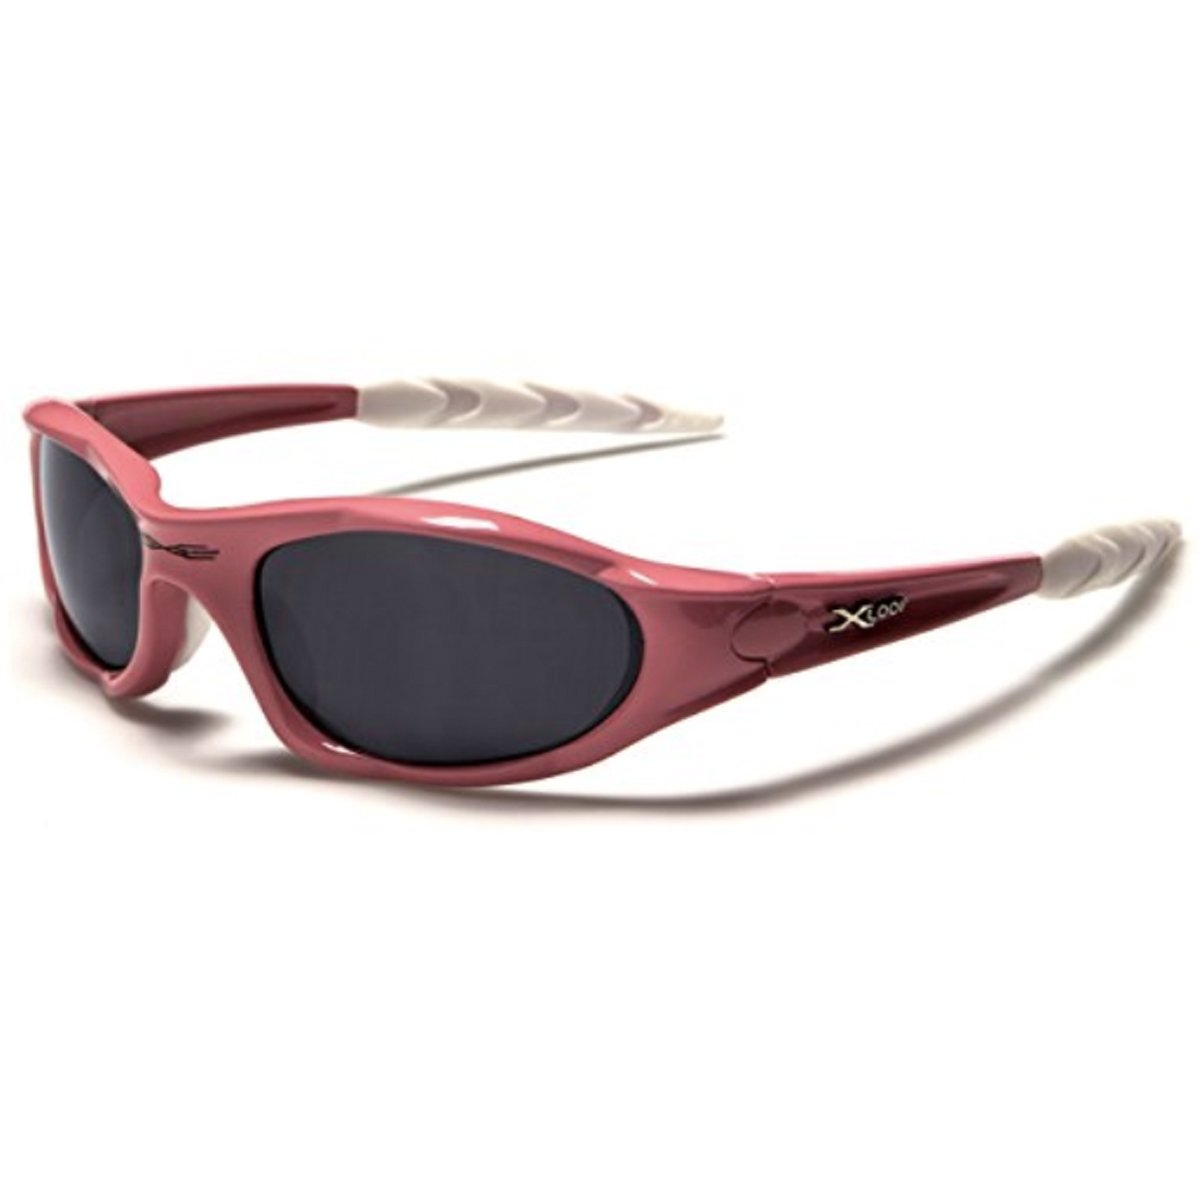 X-Loop Ladies Sunglasses - Sport / Cycling / Ski Sunglasses (UV400)